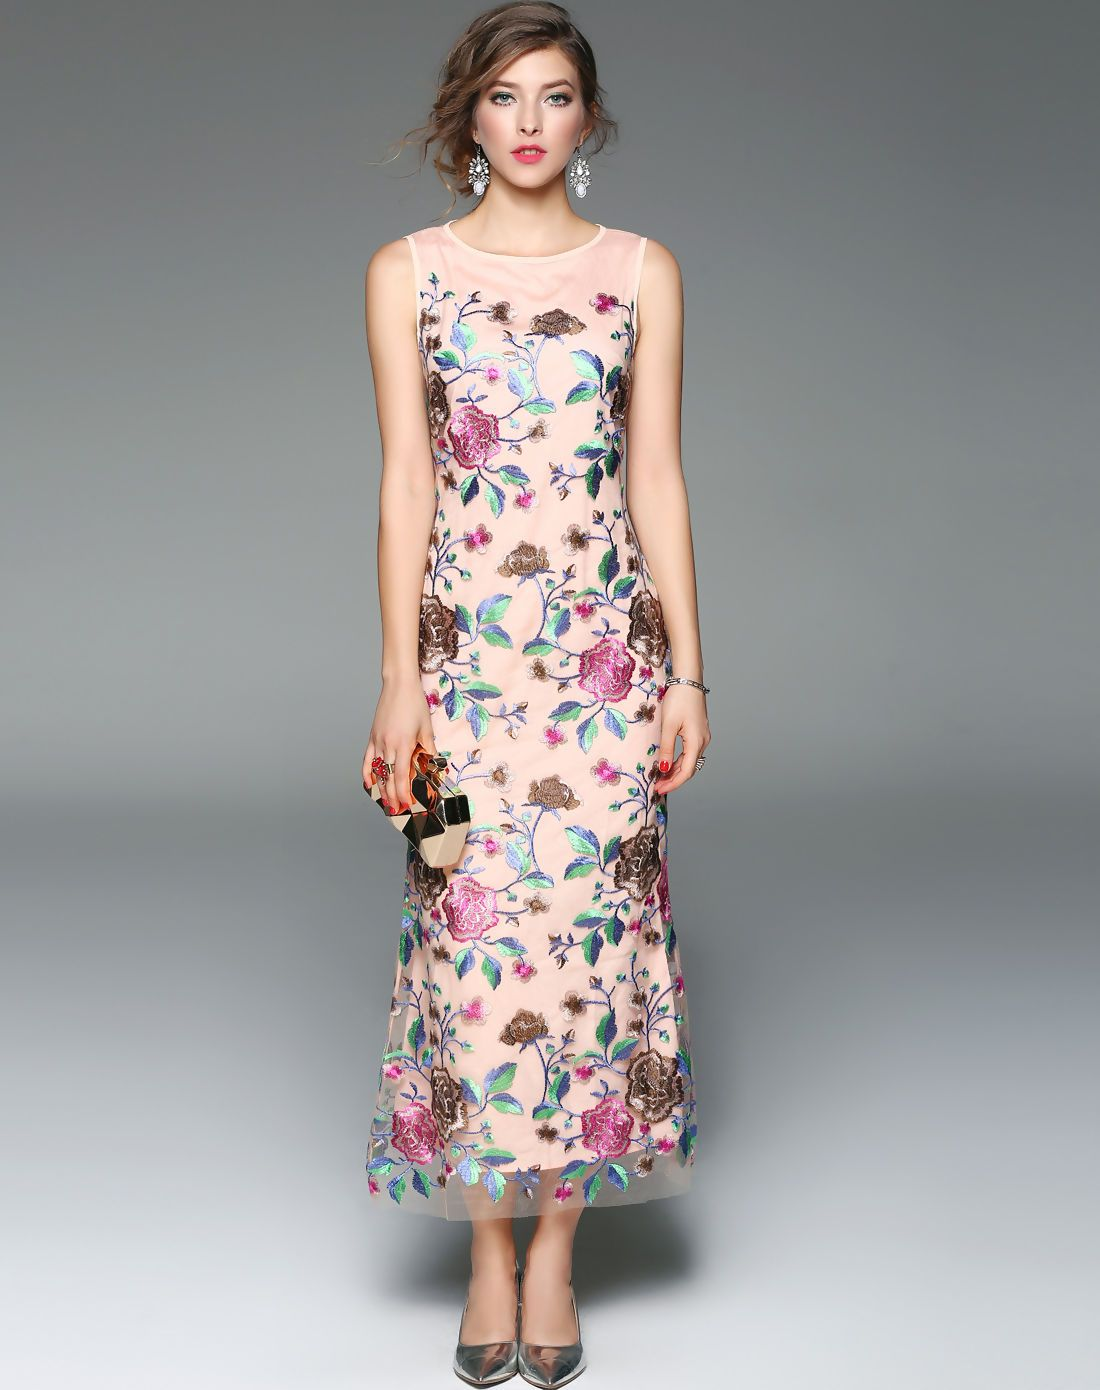 358d2026e90d  AdoreWe  VIPme Bodycon Dresses - ZERACO Apricot Floral Embroidered Bodycon  Party Maxi Dress - AdoreWe.com